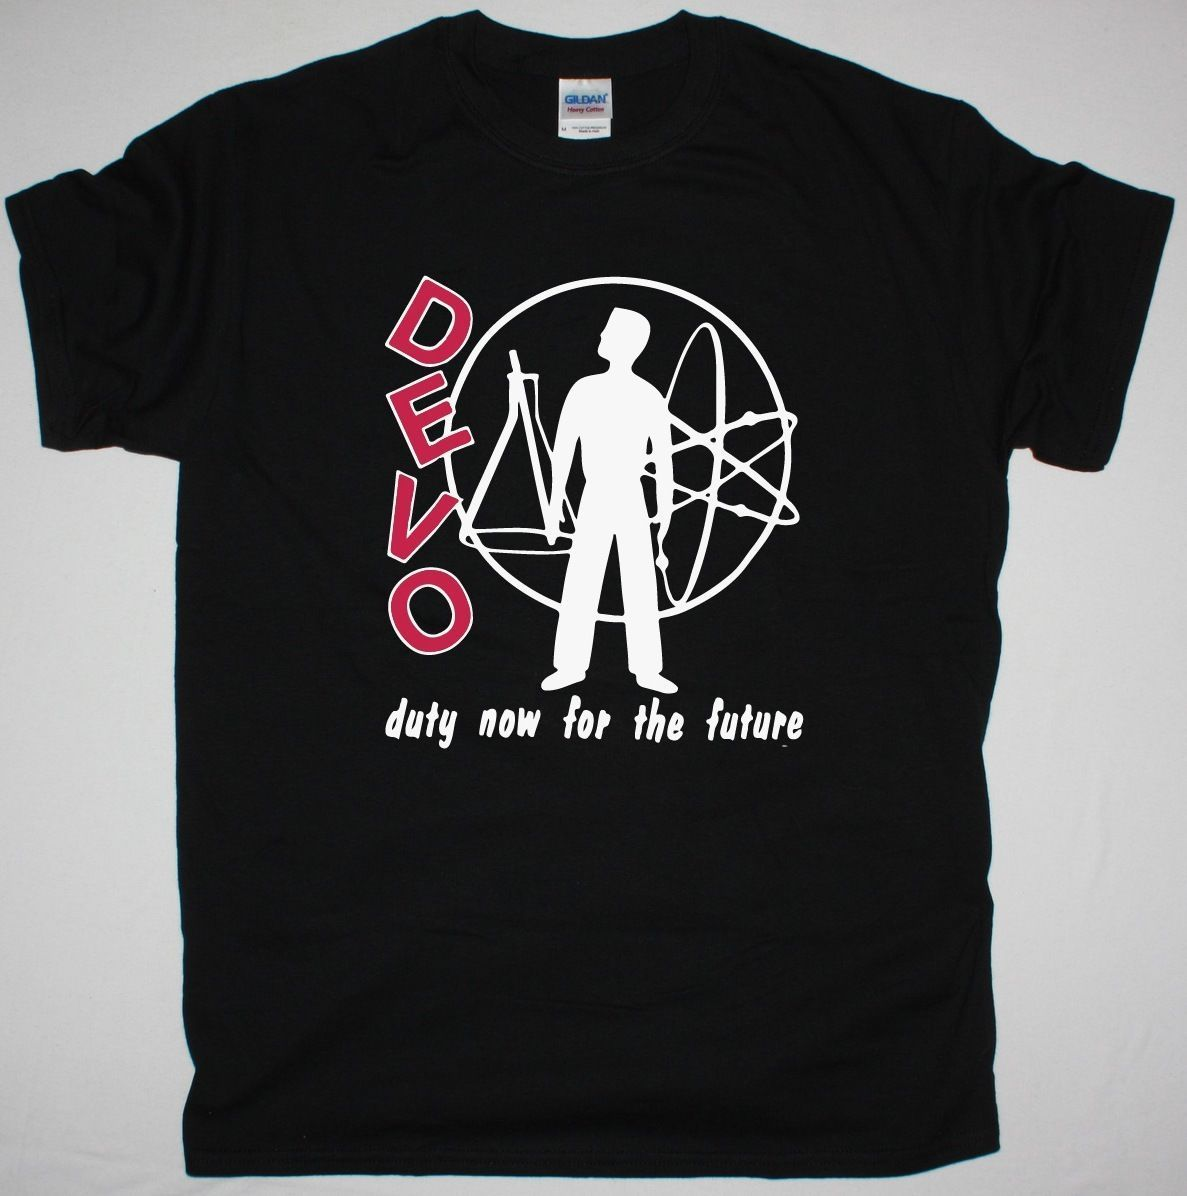 DEVO DUTY NOW FOR THE FUTURE ART POP ELECTRONIC SYNTHPOP NEW BLACK T-SHIRT